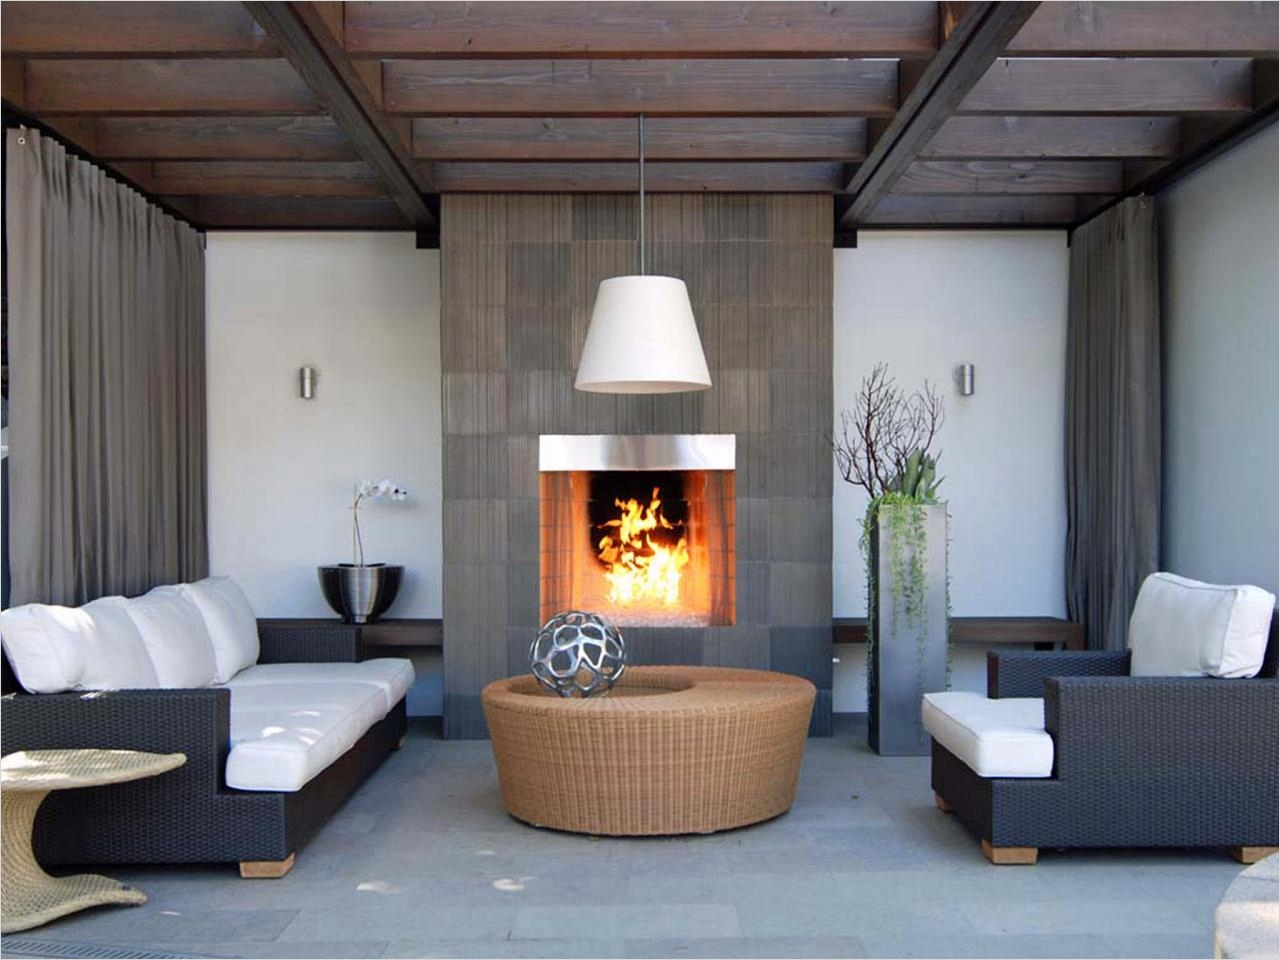 42 Cozy Small Outdoor Living Spaces 81 Outdoor Fireplace Options 5